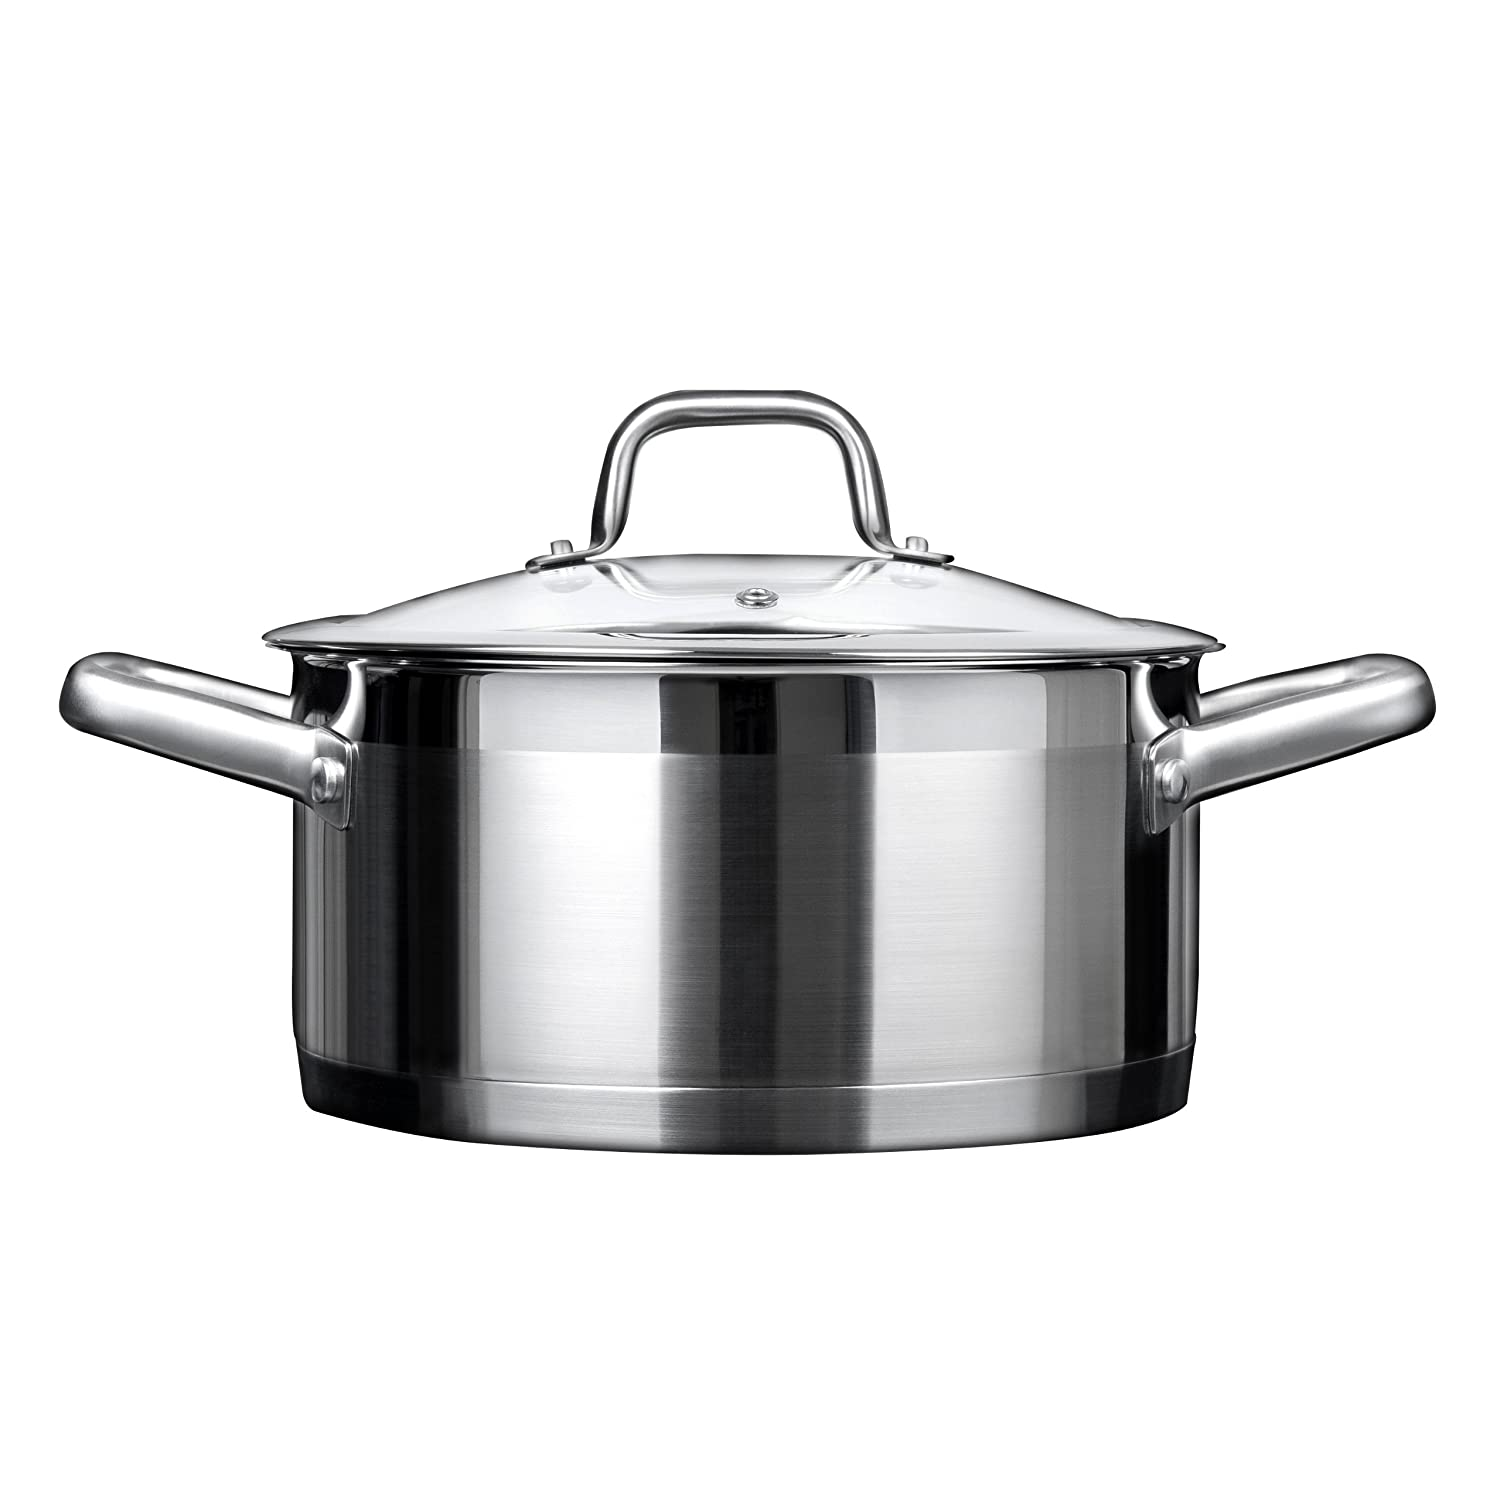 Duxtop Professional Stainless steel Cookware Induction Ready Impact-bonded Technology (1.6Qt Saucepan) SSIB-17